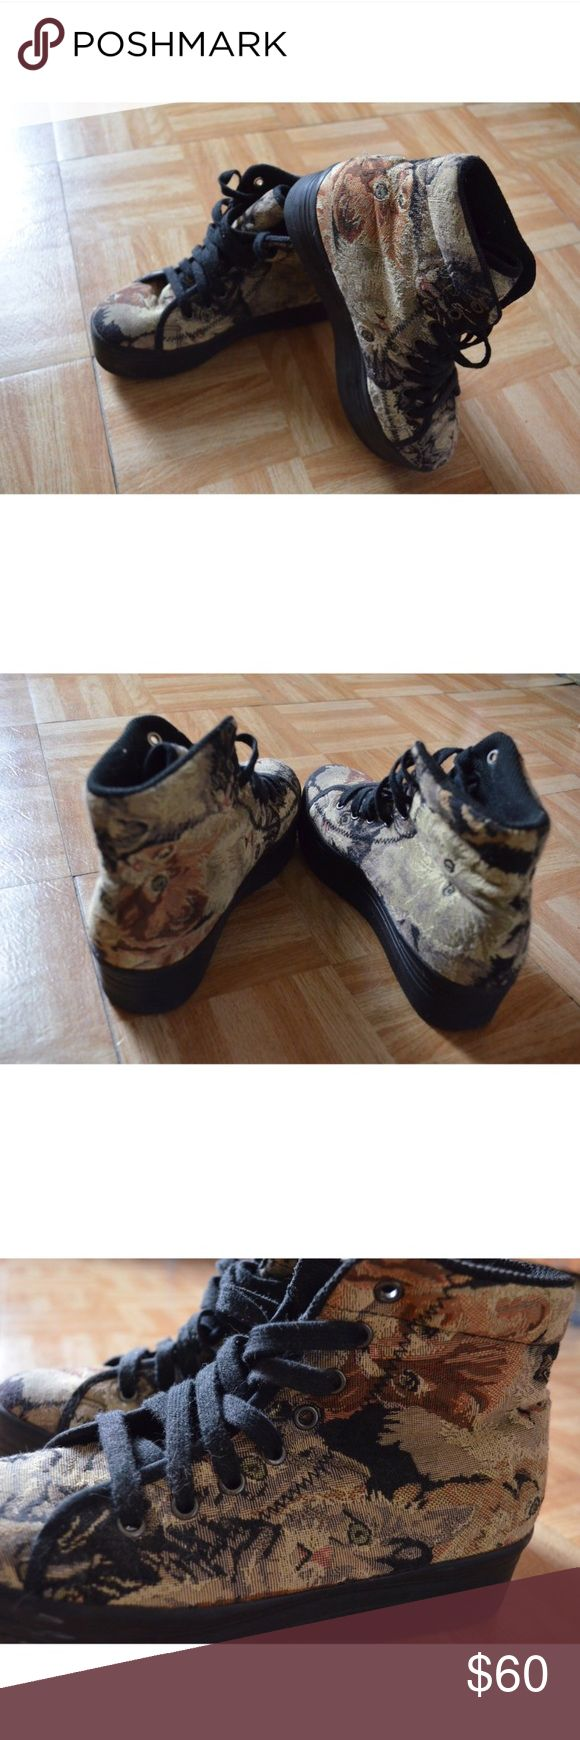 Jeffrey Campbell cat tapestry platform sneakers! **VERY RARE ** Jeffrey Campbell cat tapestry platform sneakers! Worn only about 3-4 times! Perfect condition ✨ #shoes #jeffreycampbell #platformsneakers #cats Jeffrey Campbell Shoes Sneakers